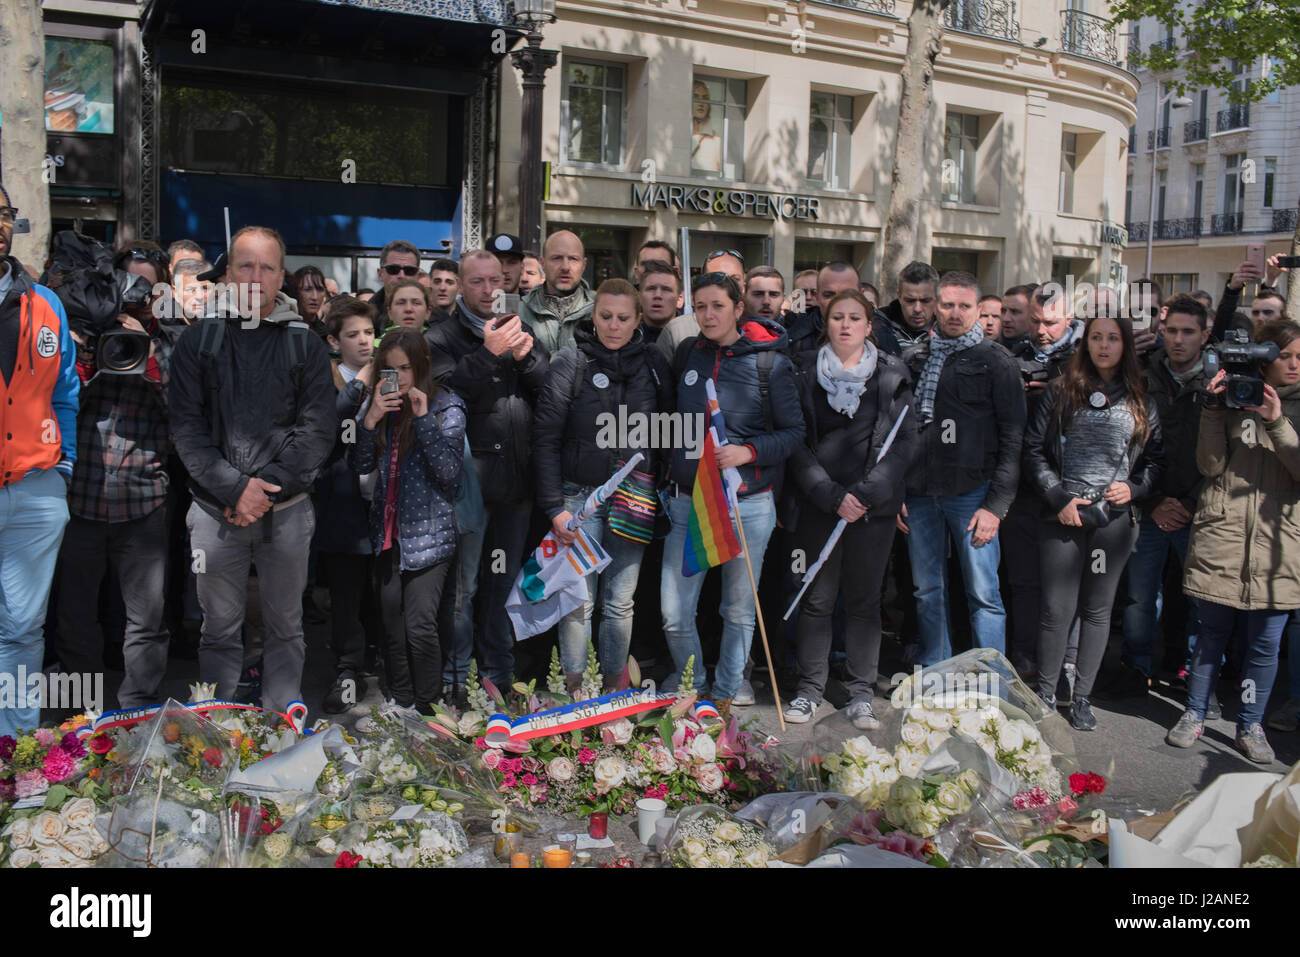 Paris Manifestation Police Officers angry And in Mourning Stock Photo Alamy